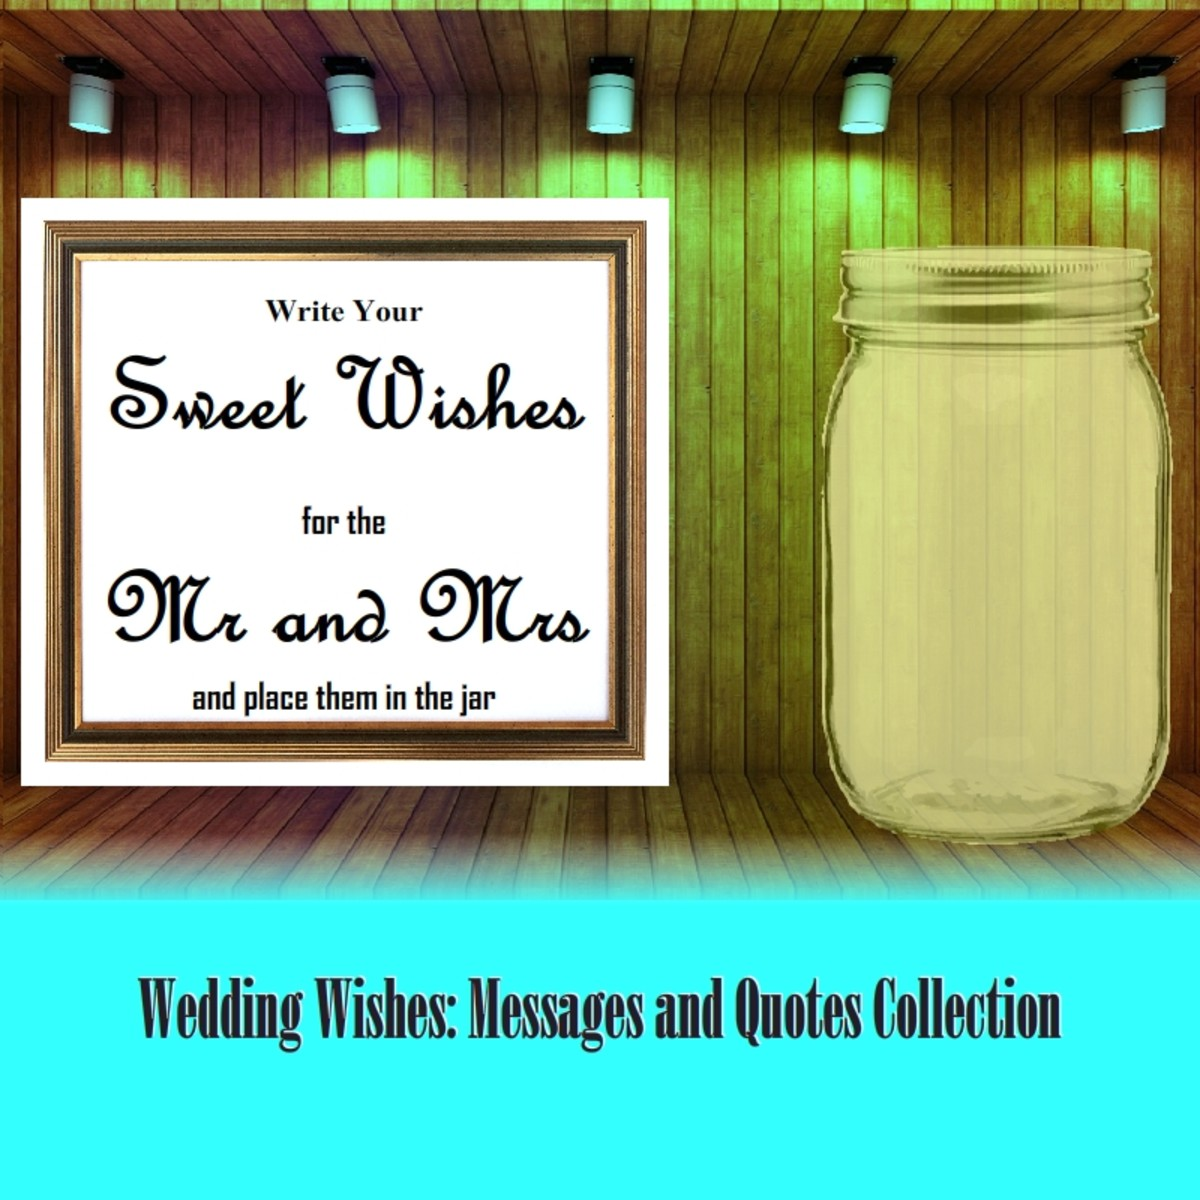 Wedding Wishes: Messages and Quotes